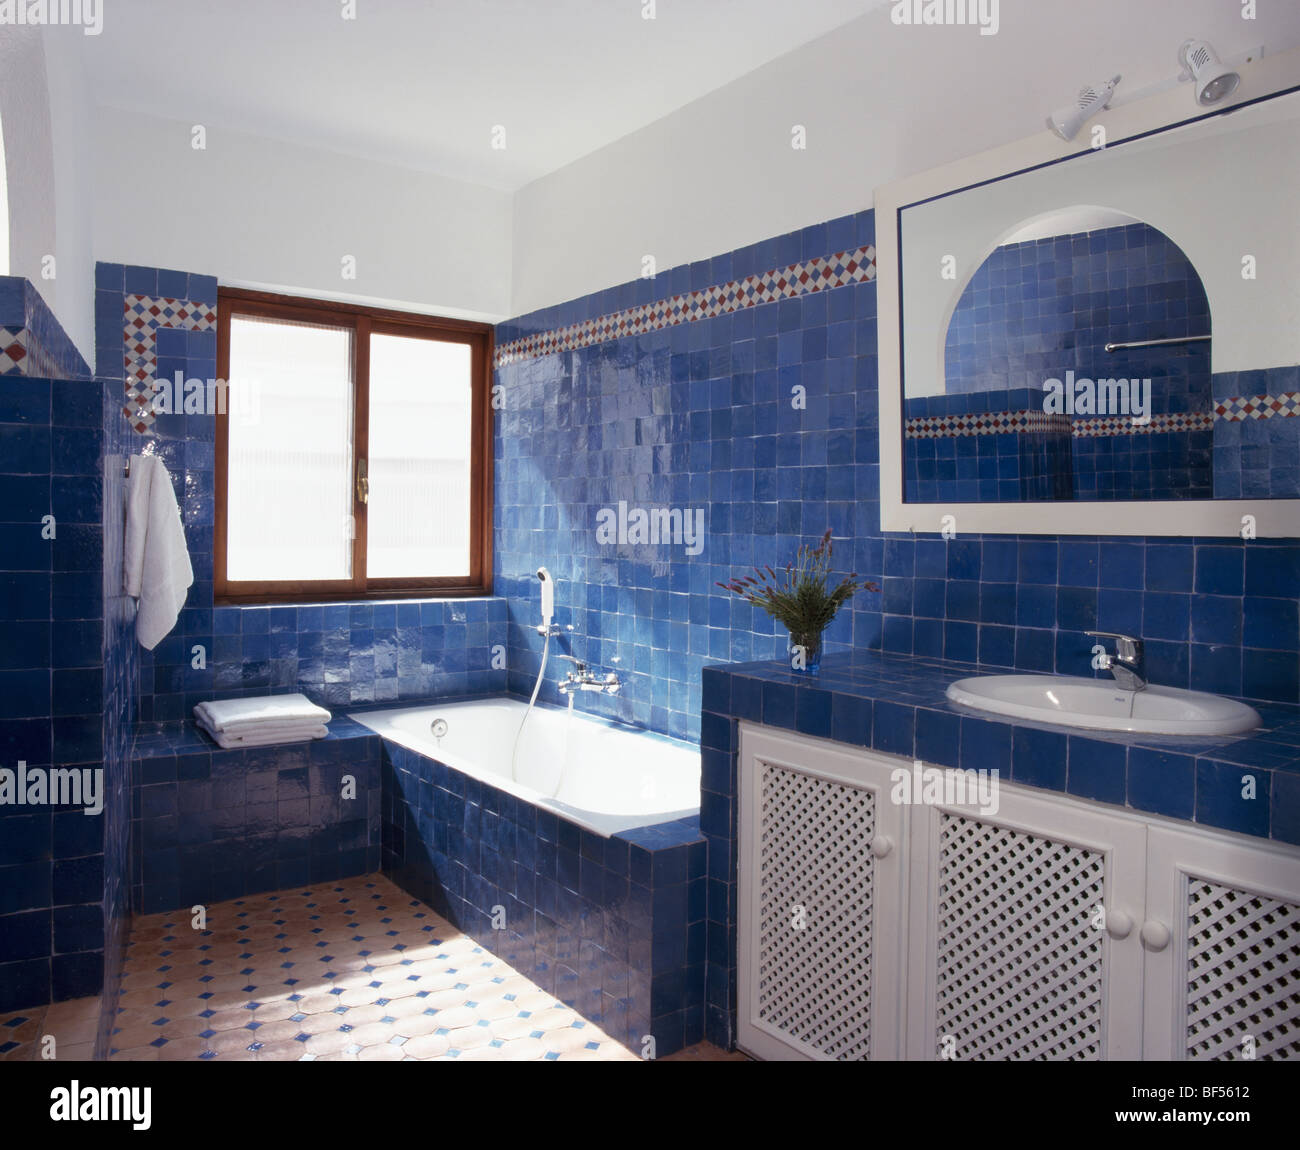 Bright Blue Tiles On Wall Above Bath In Modern Spanish